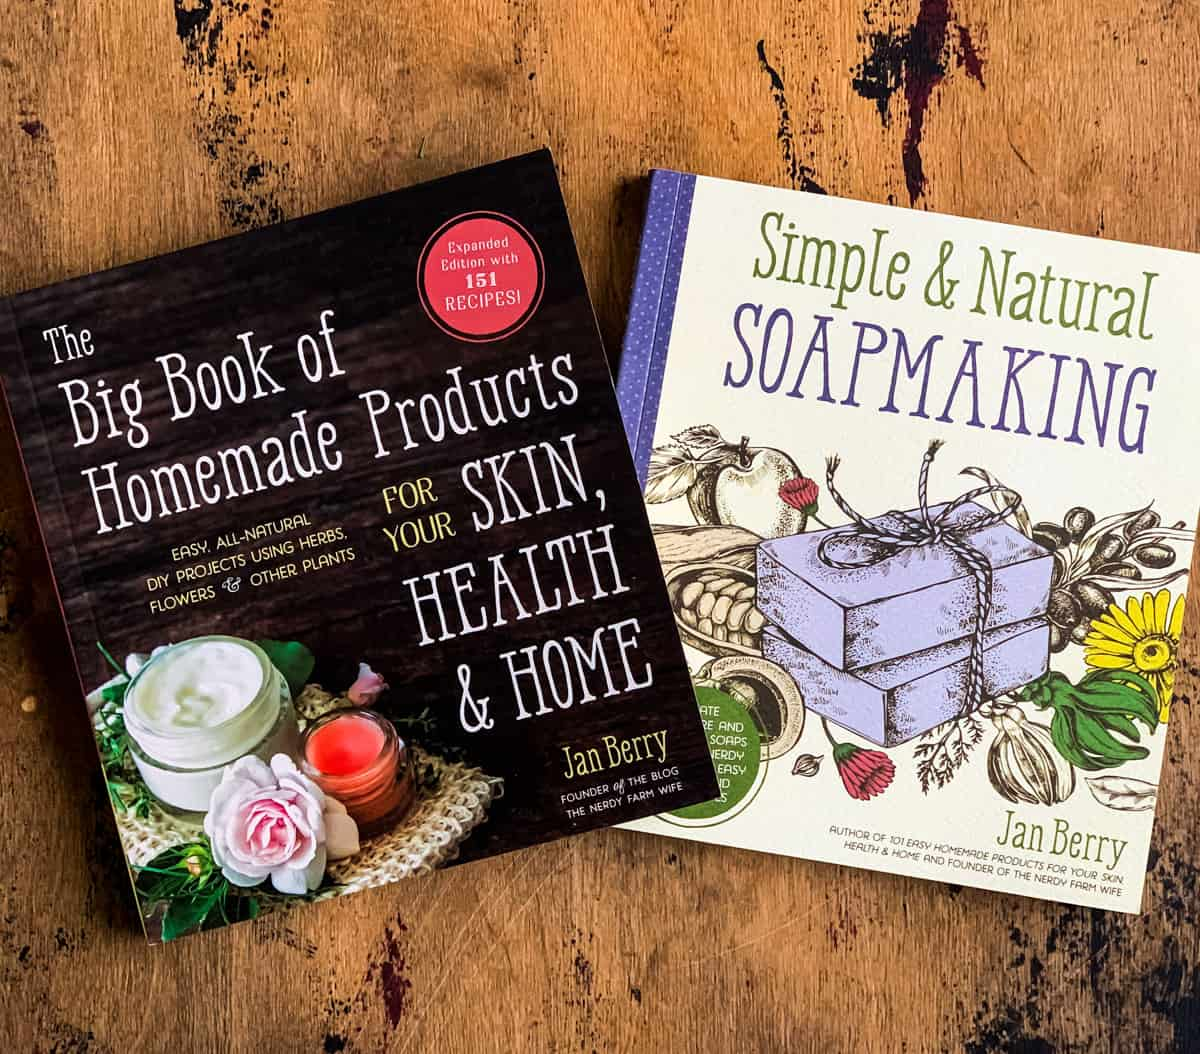 the big book of homemade products and simple and natural soapmaking books